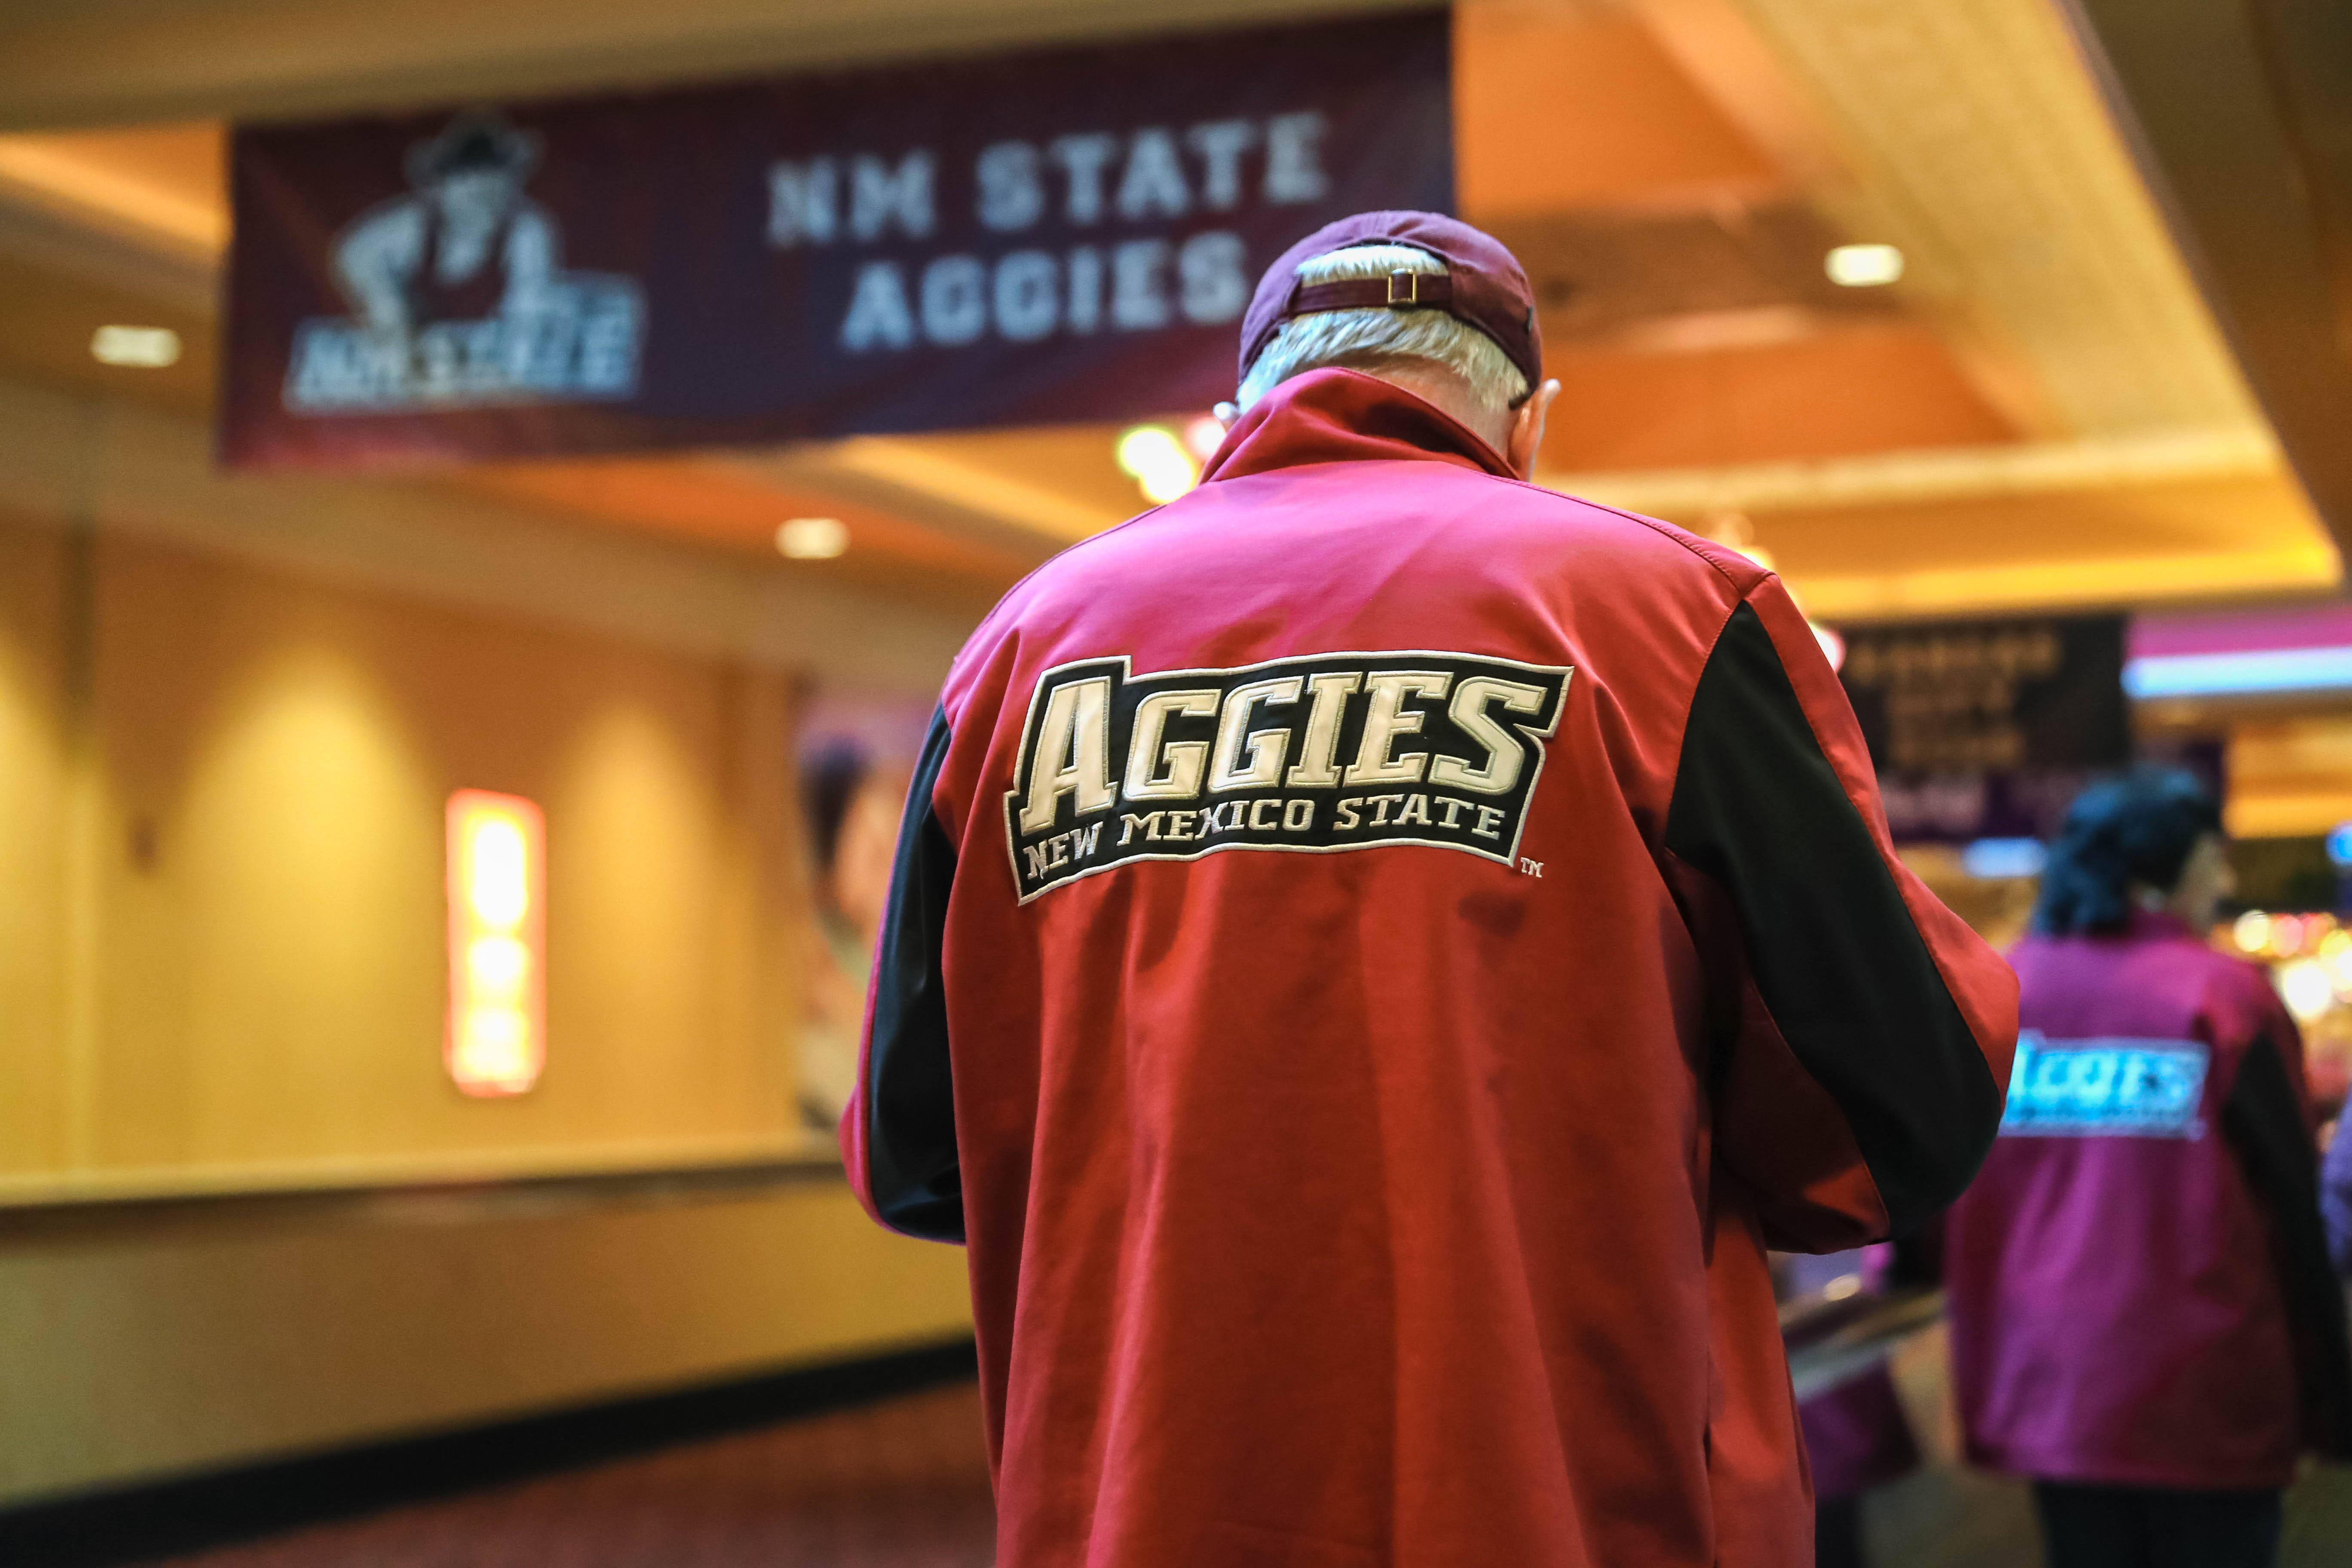 Paul Bardwell of Las Cruces makes plans to return home after the WAC announced that the rest of the conference tournament has been cancelled due to coronavirus concerns in Las Vegas, Nevada on Thursday, March 12, 2020.